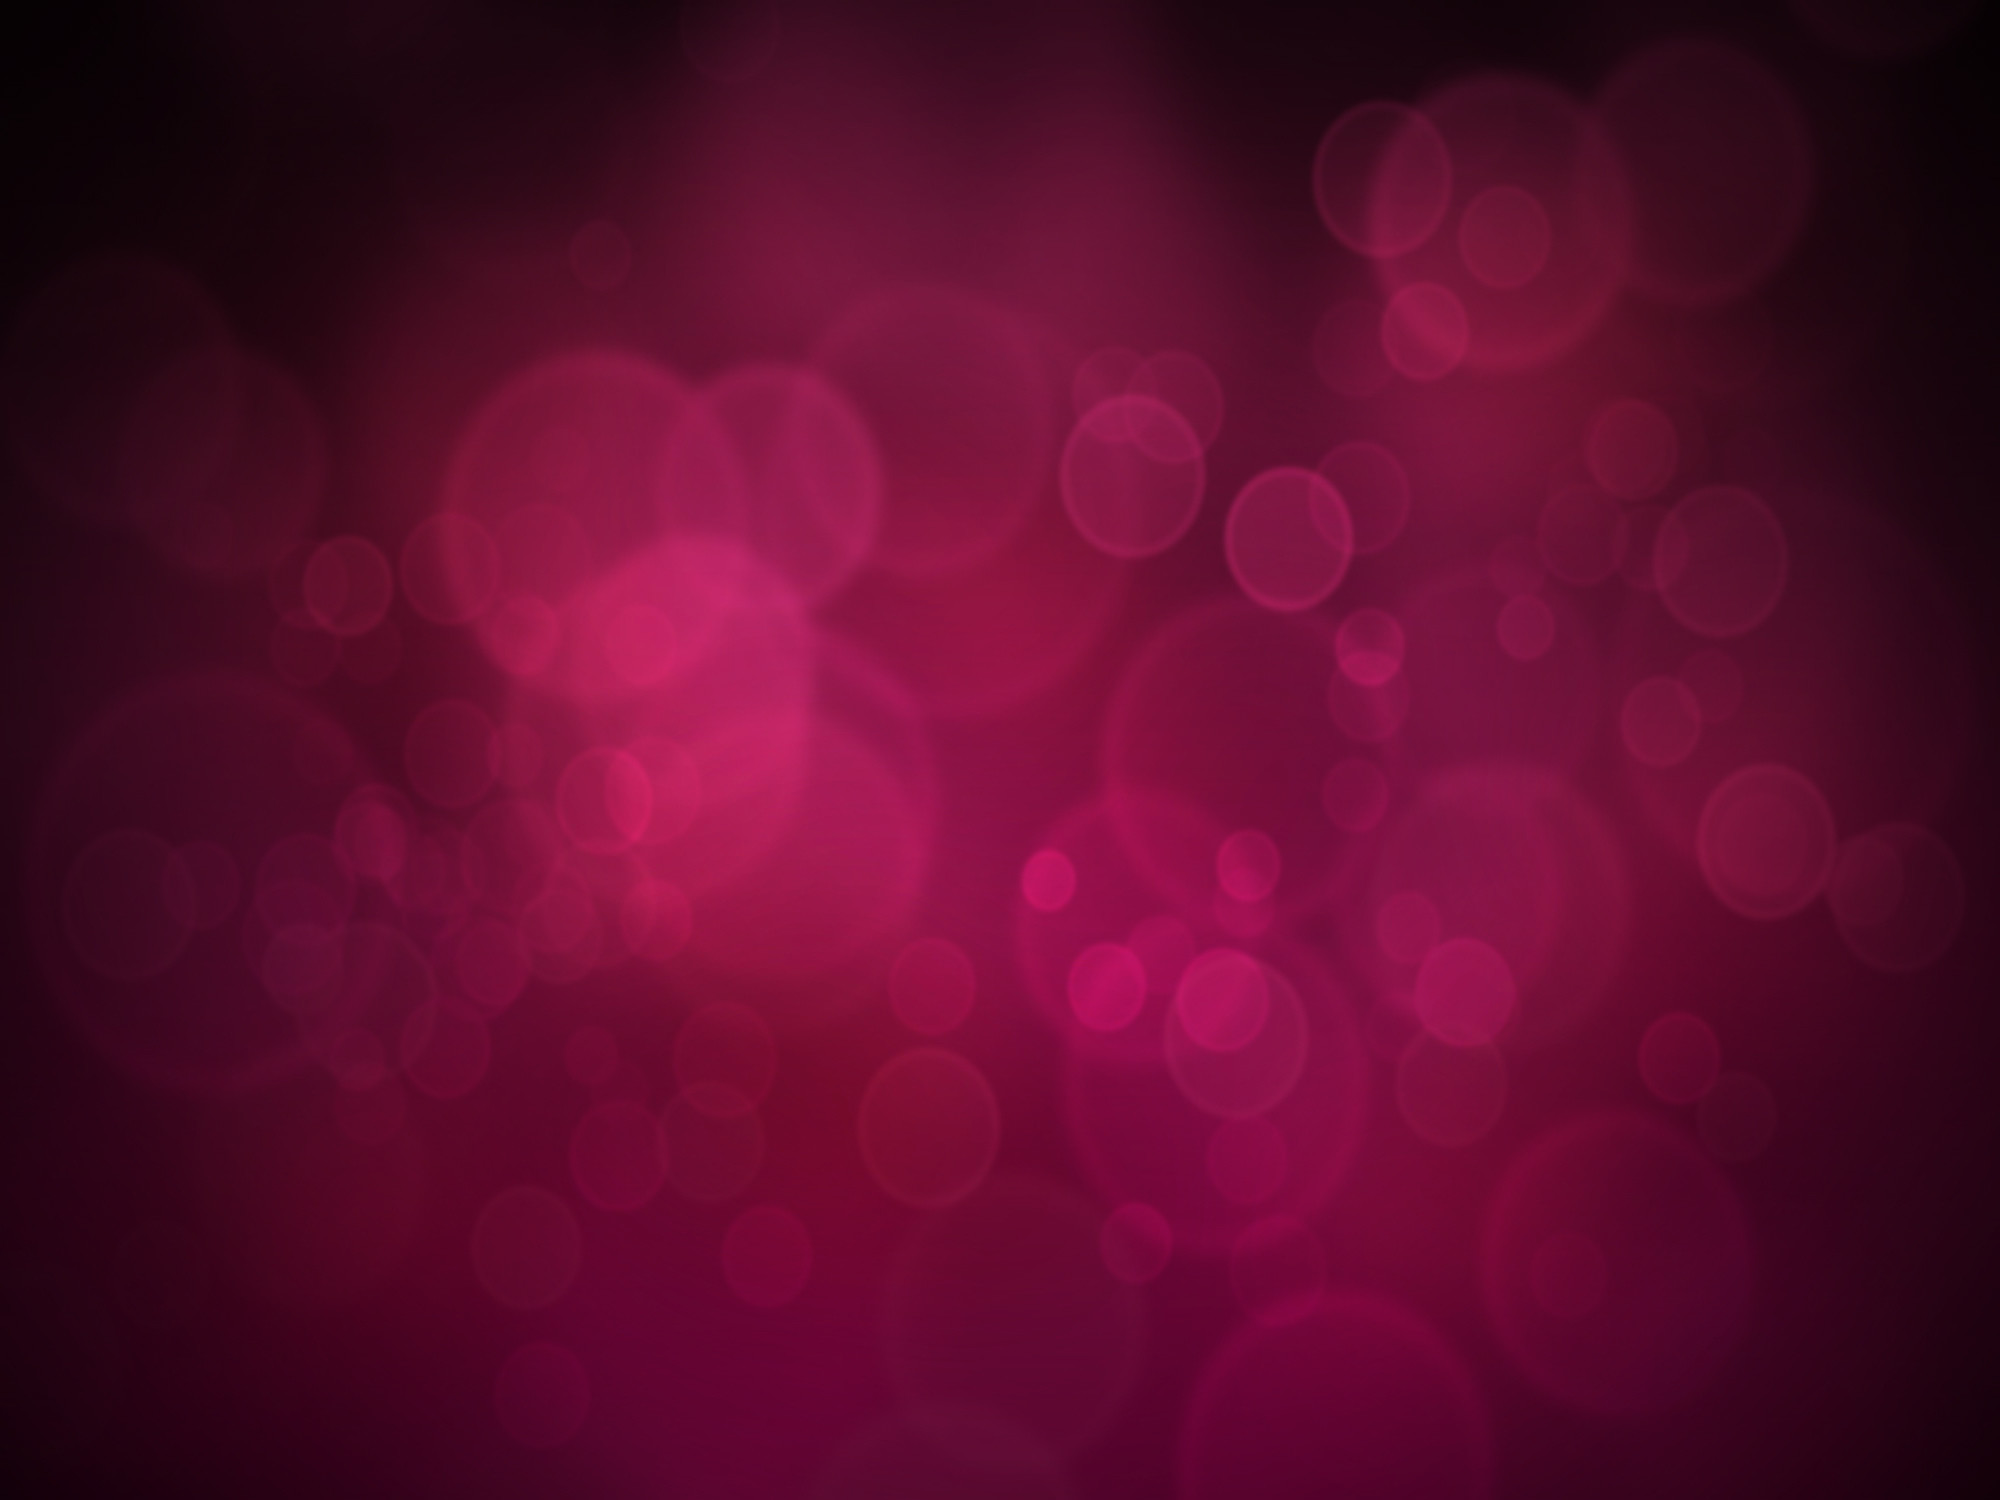 2000x1500 Pink Background 217Z Backgrounds Awesome - naukriwall.com